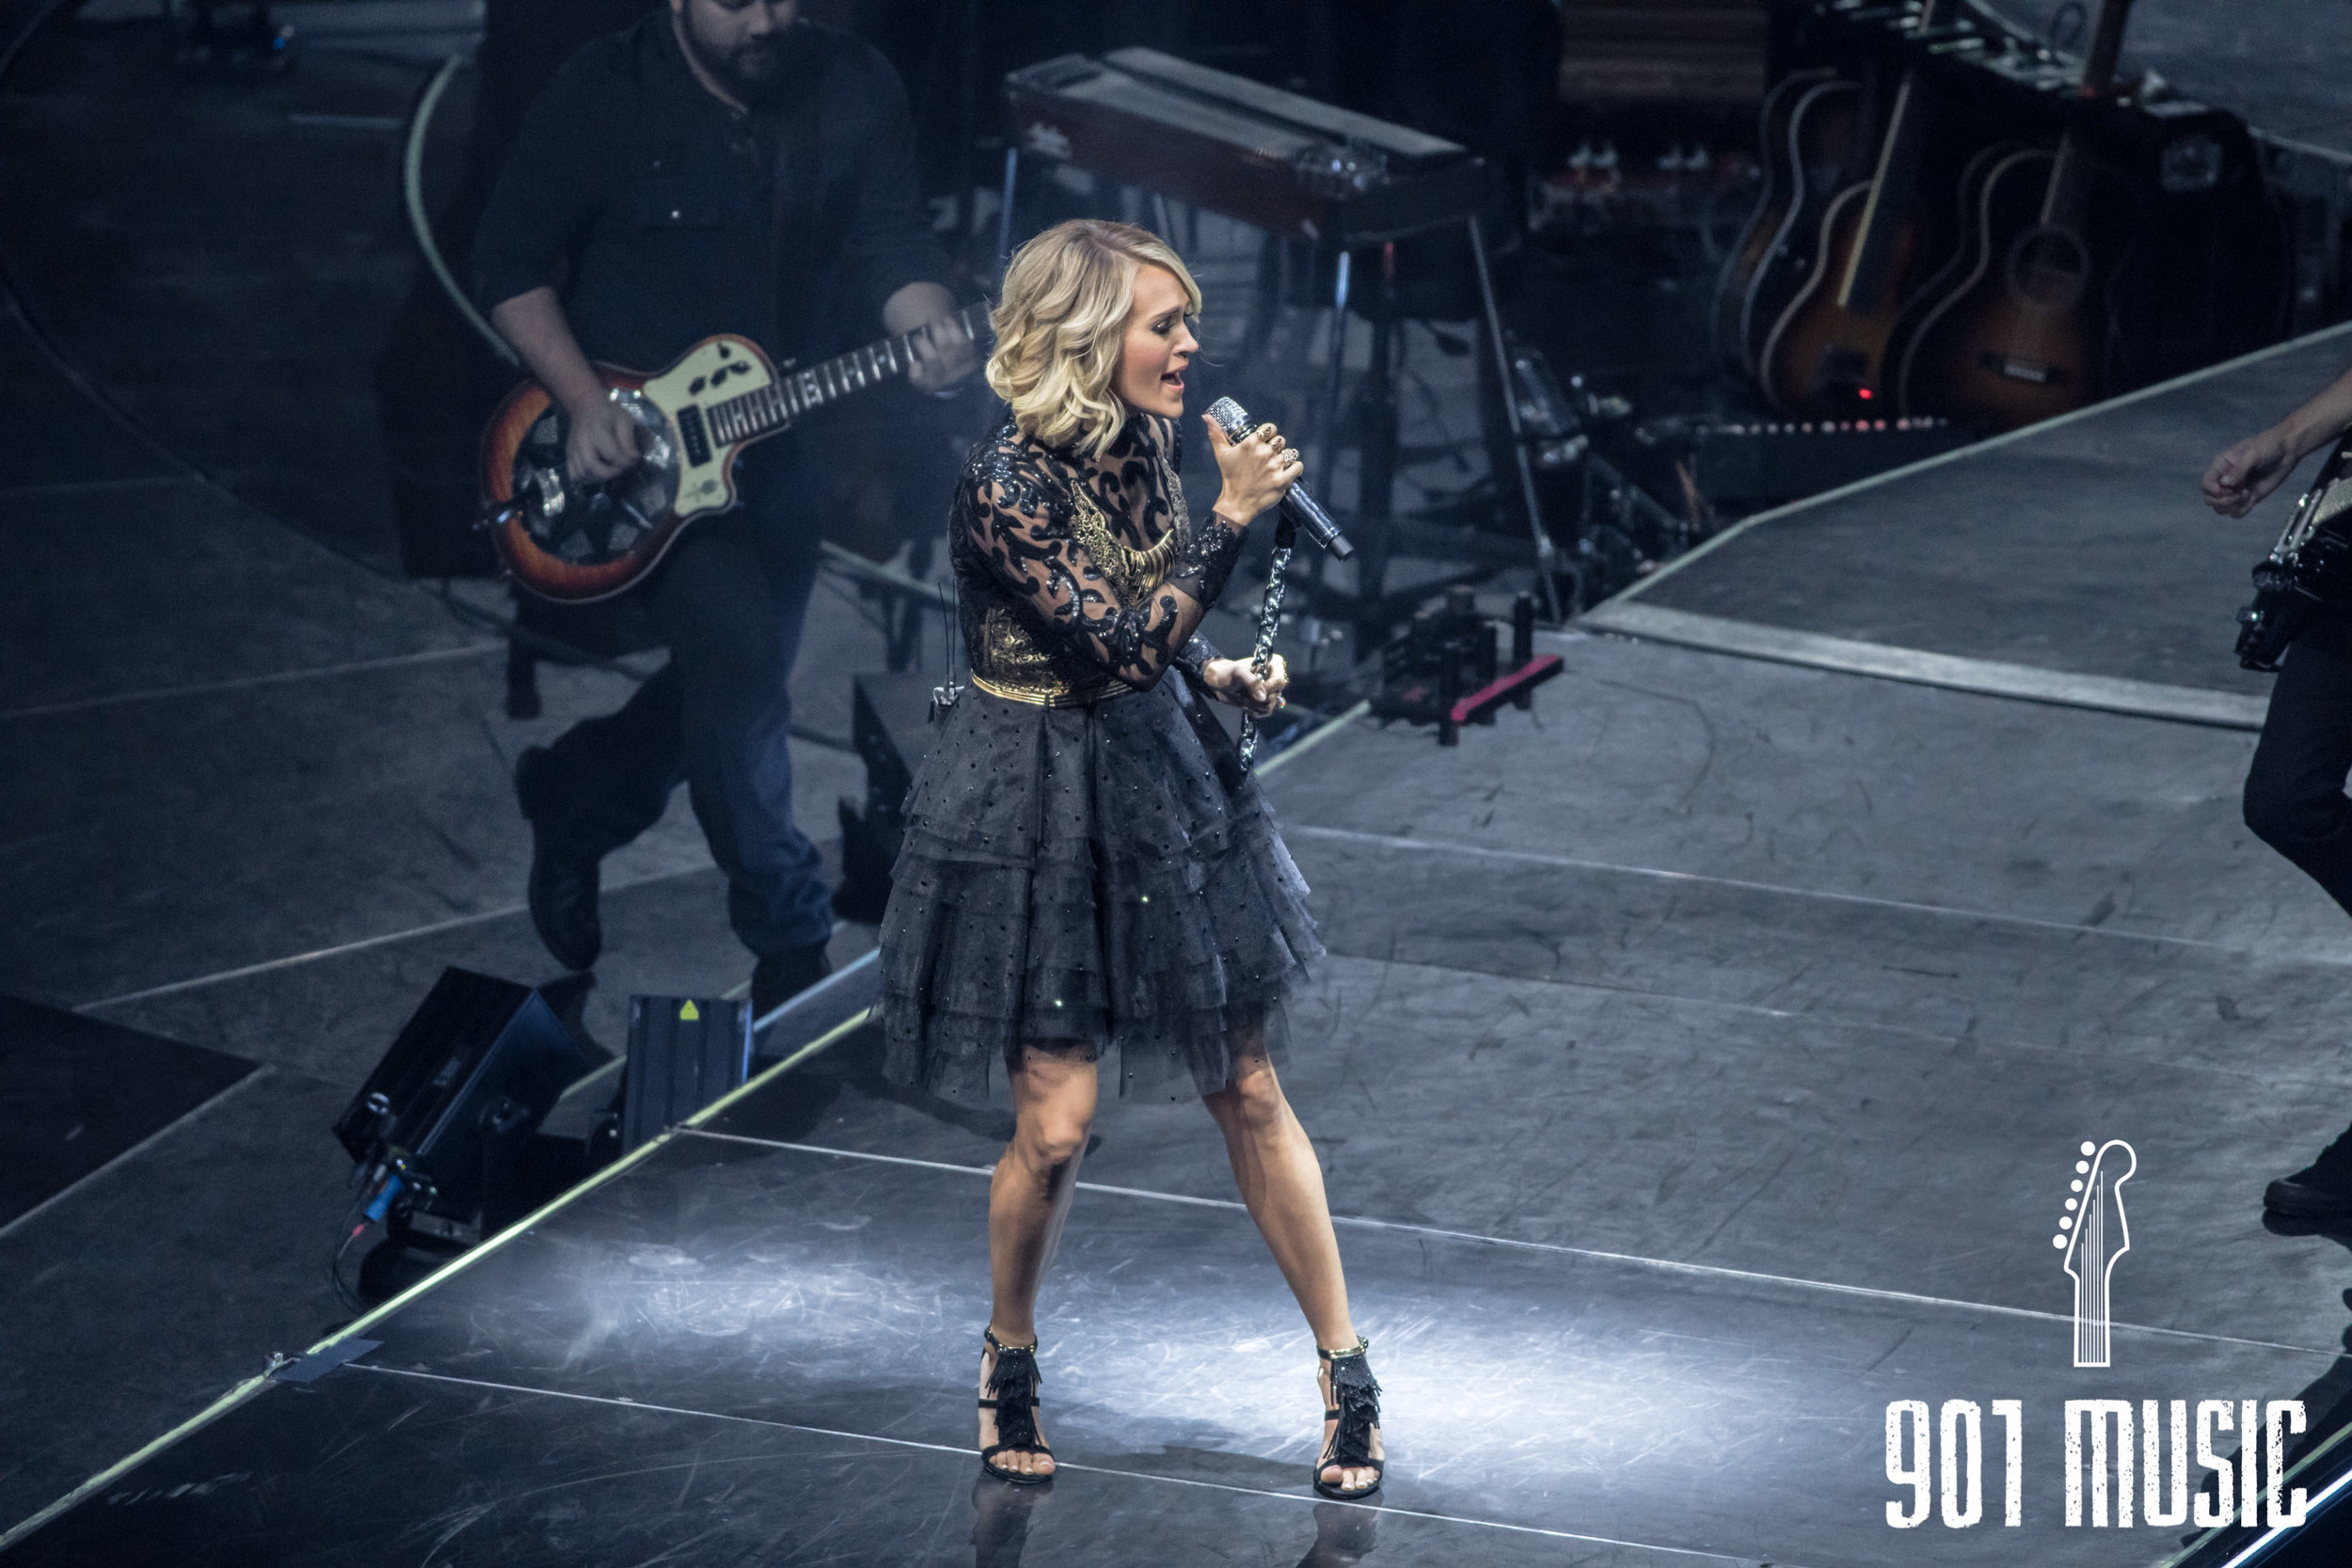 na11132016-Carrie Underwood-37.jpg